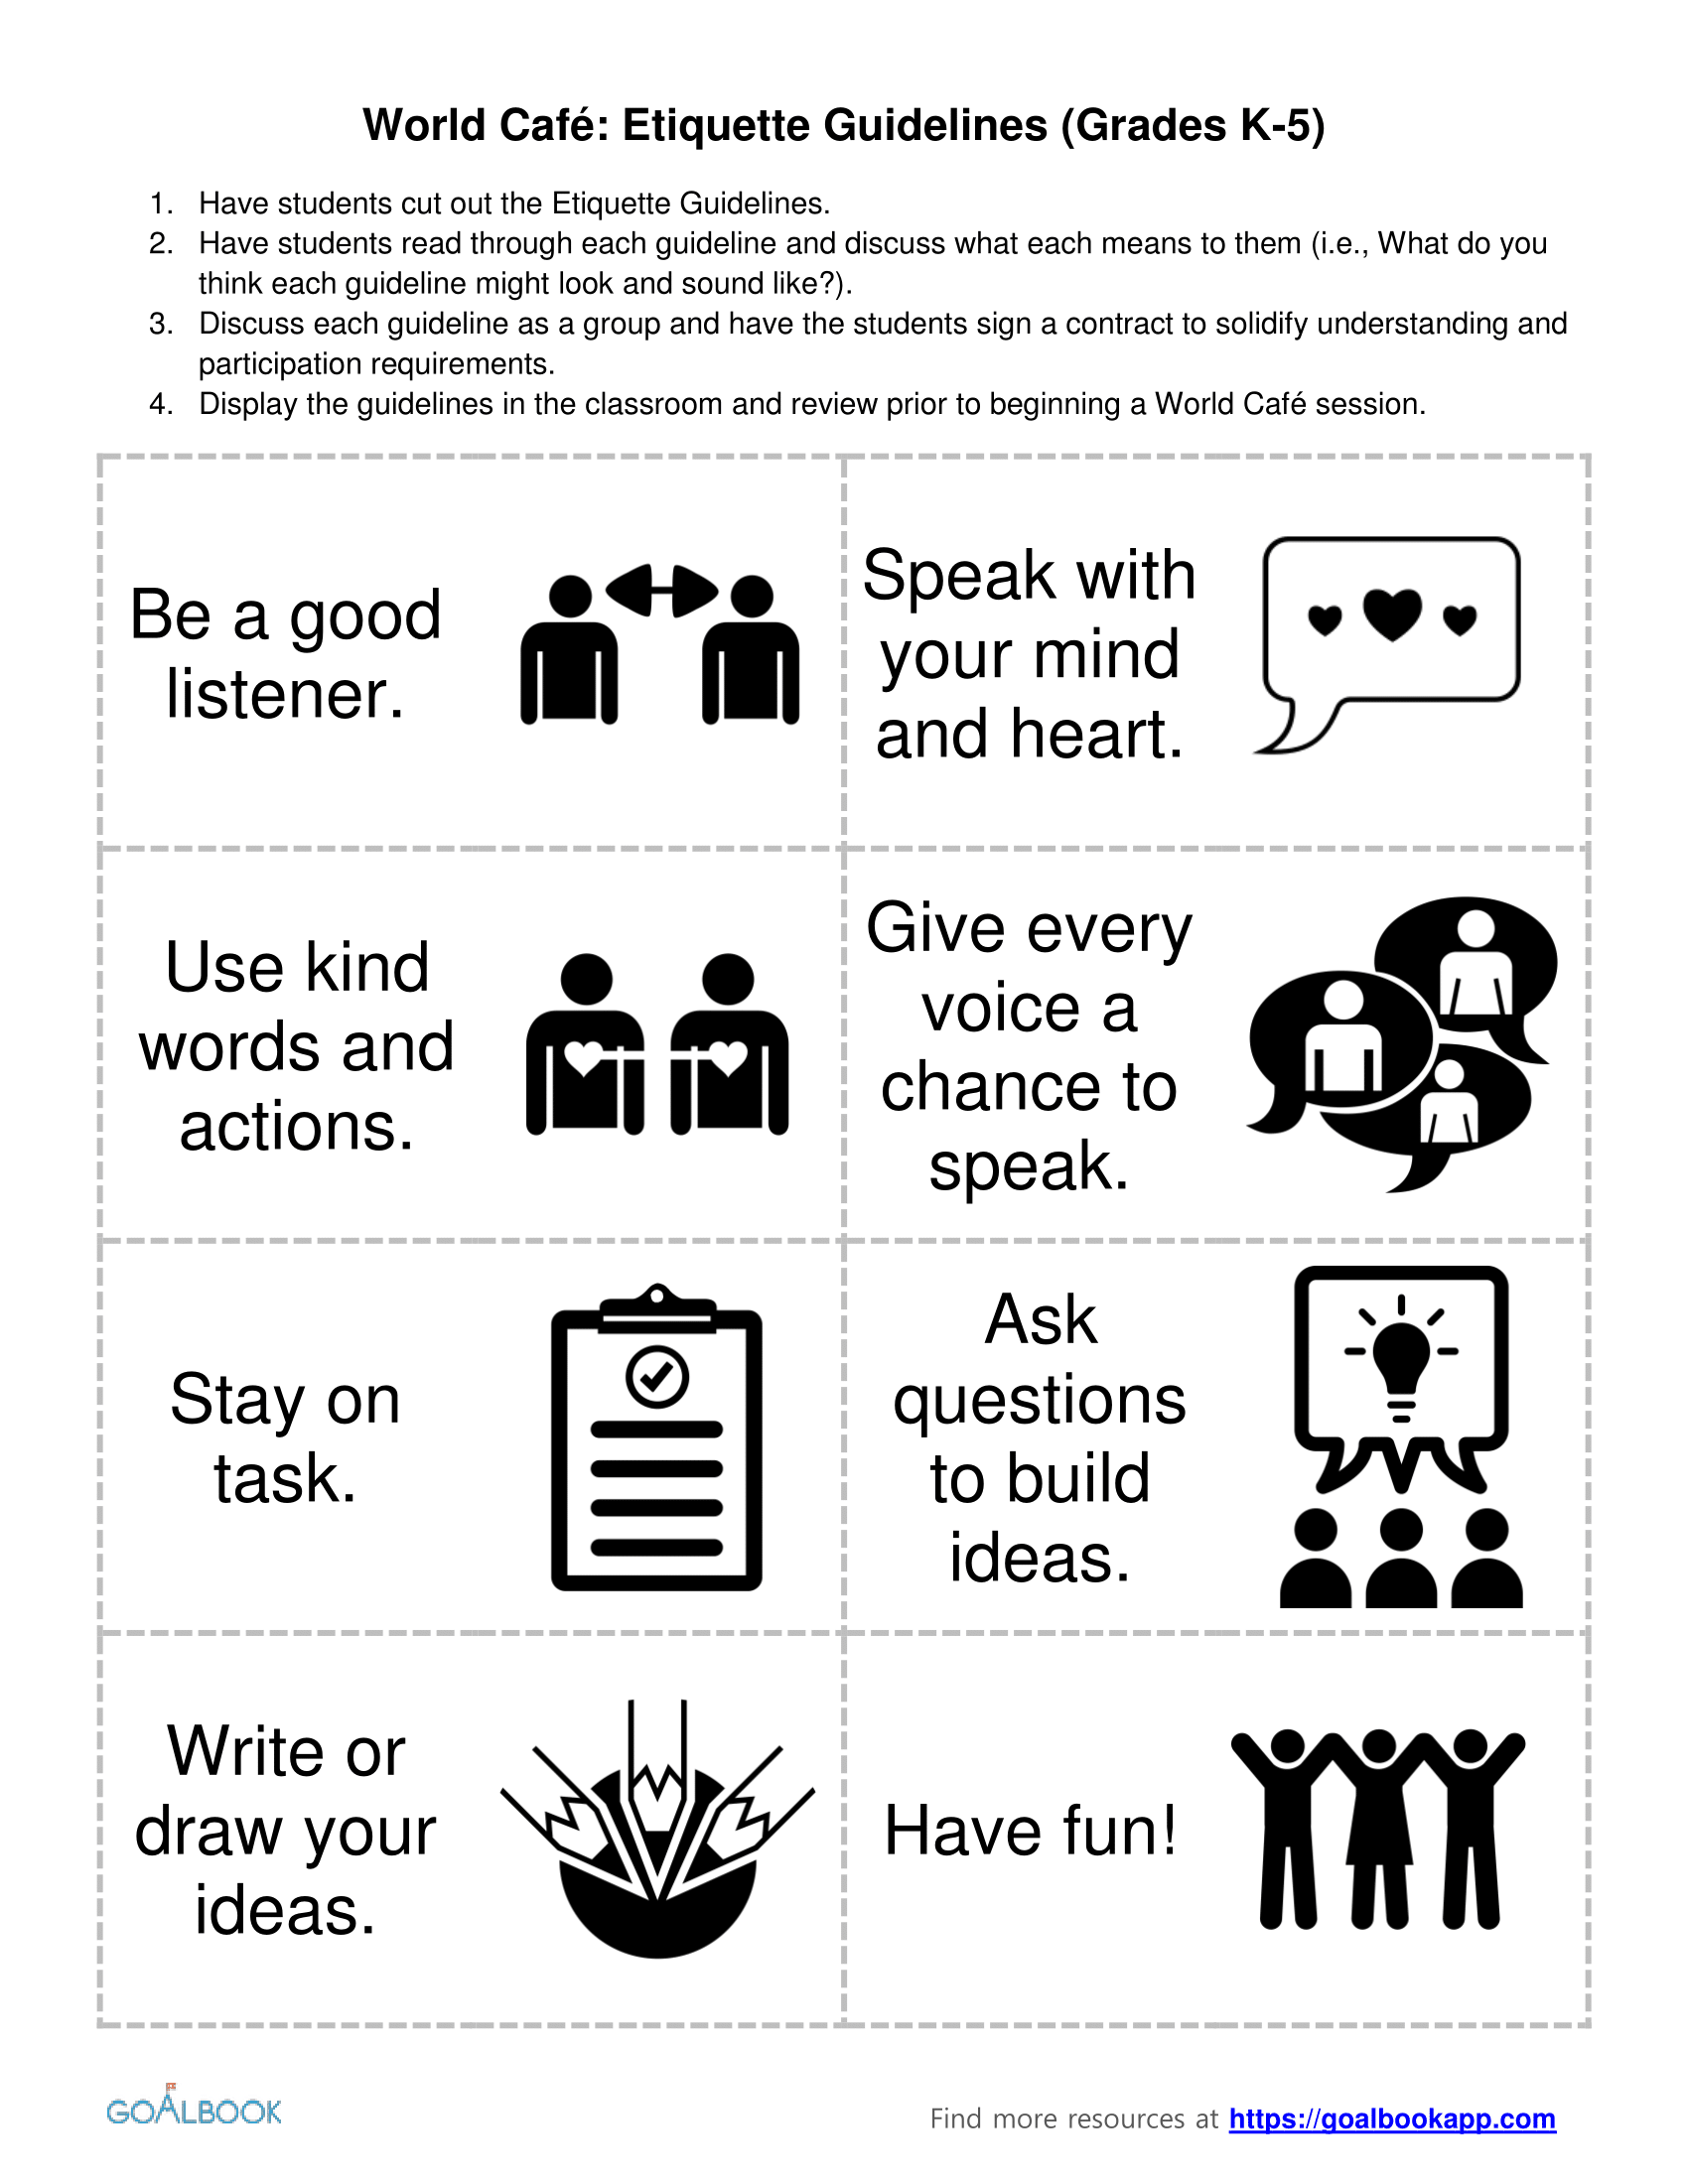 World Café Etiquette Guidelines (K-5)